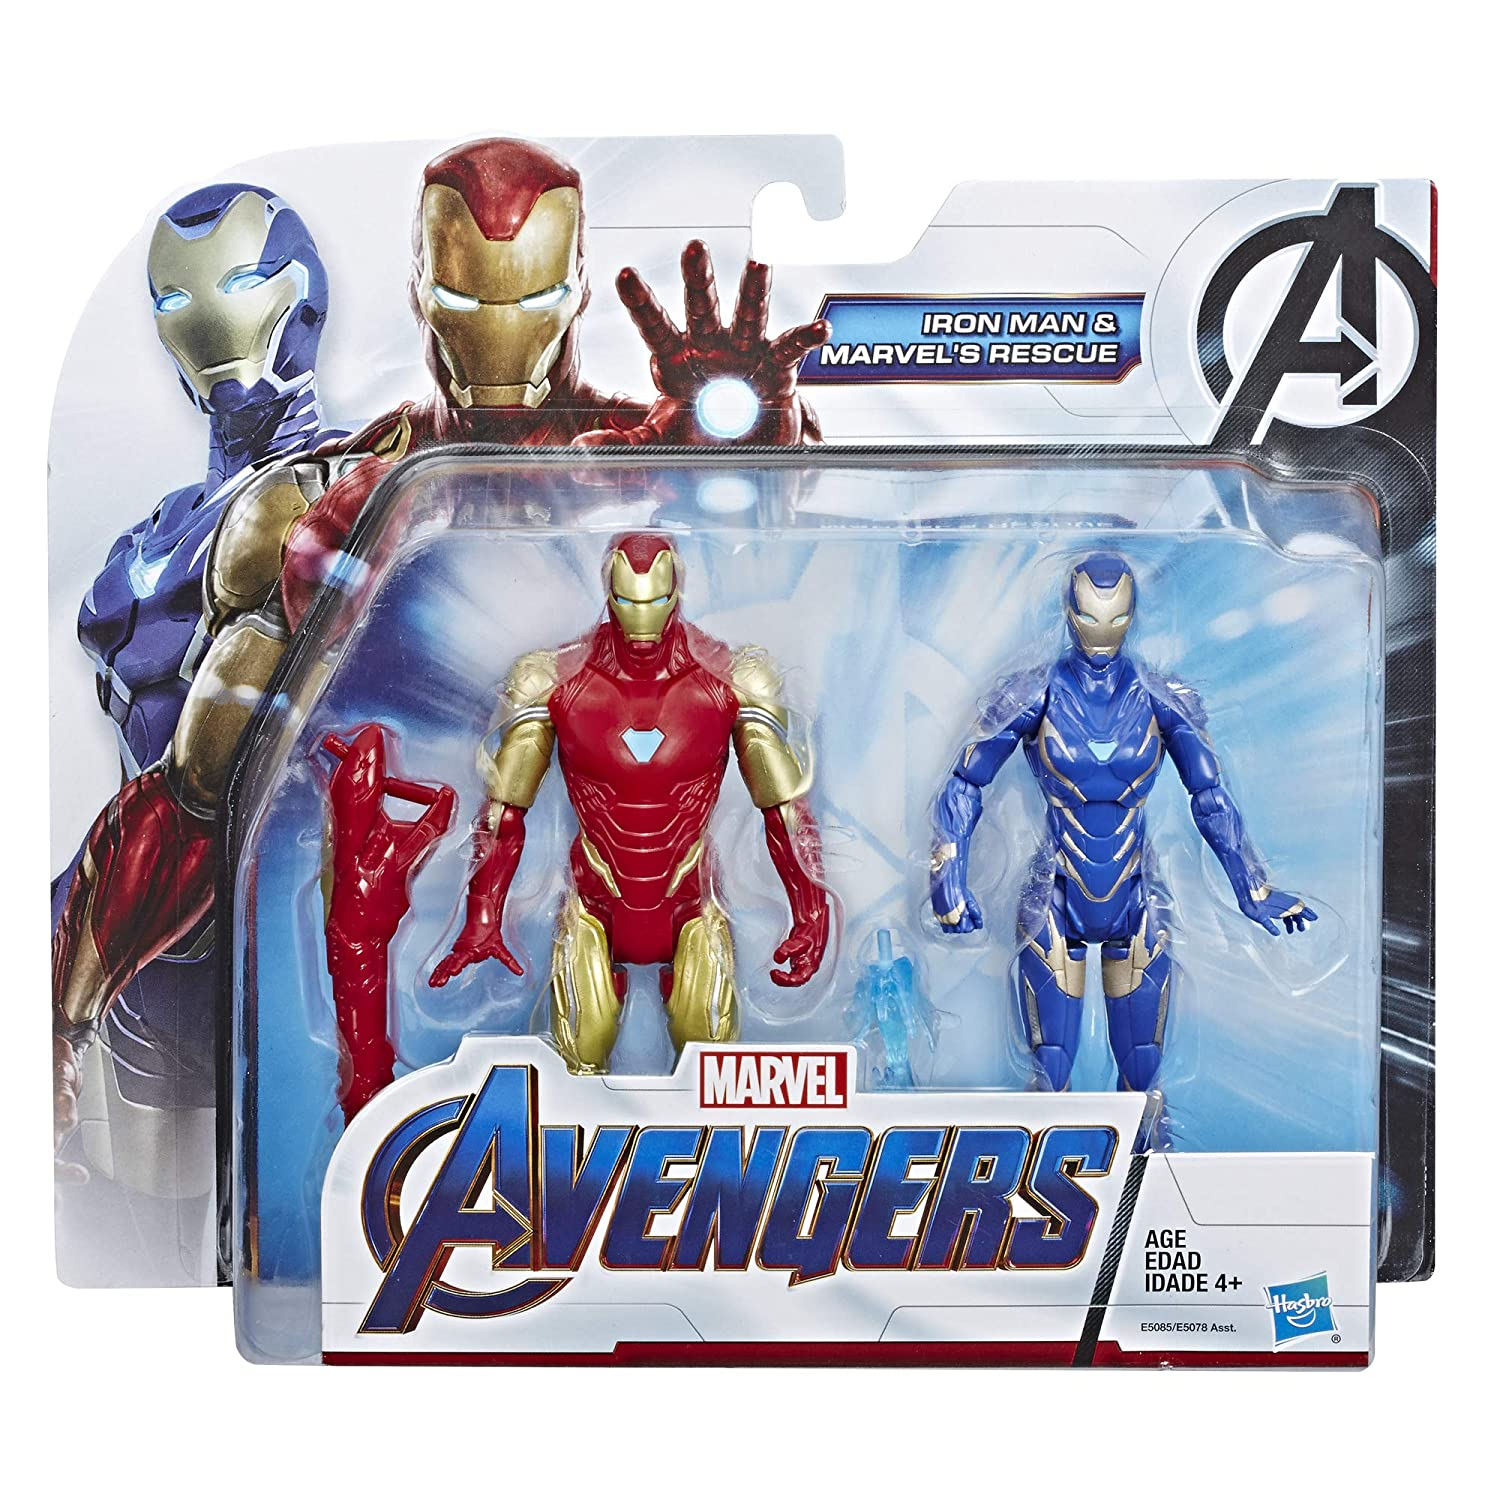 Avengers Marvel Endgame Iron Man and Marvel/'s Rescue Figure 2-Pack Toy Characters from Marvel Cinematic Universe MCU Movies